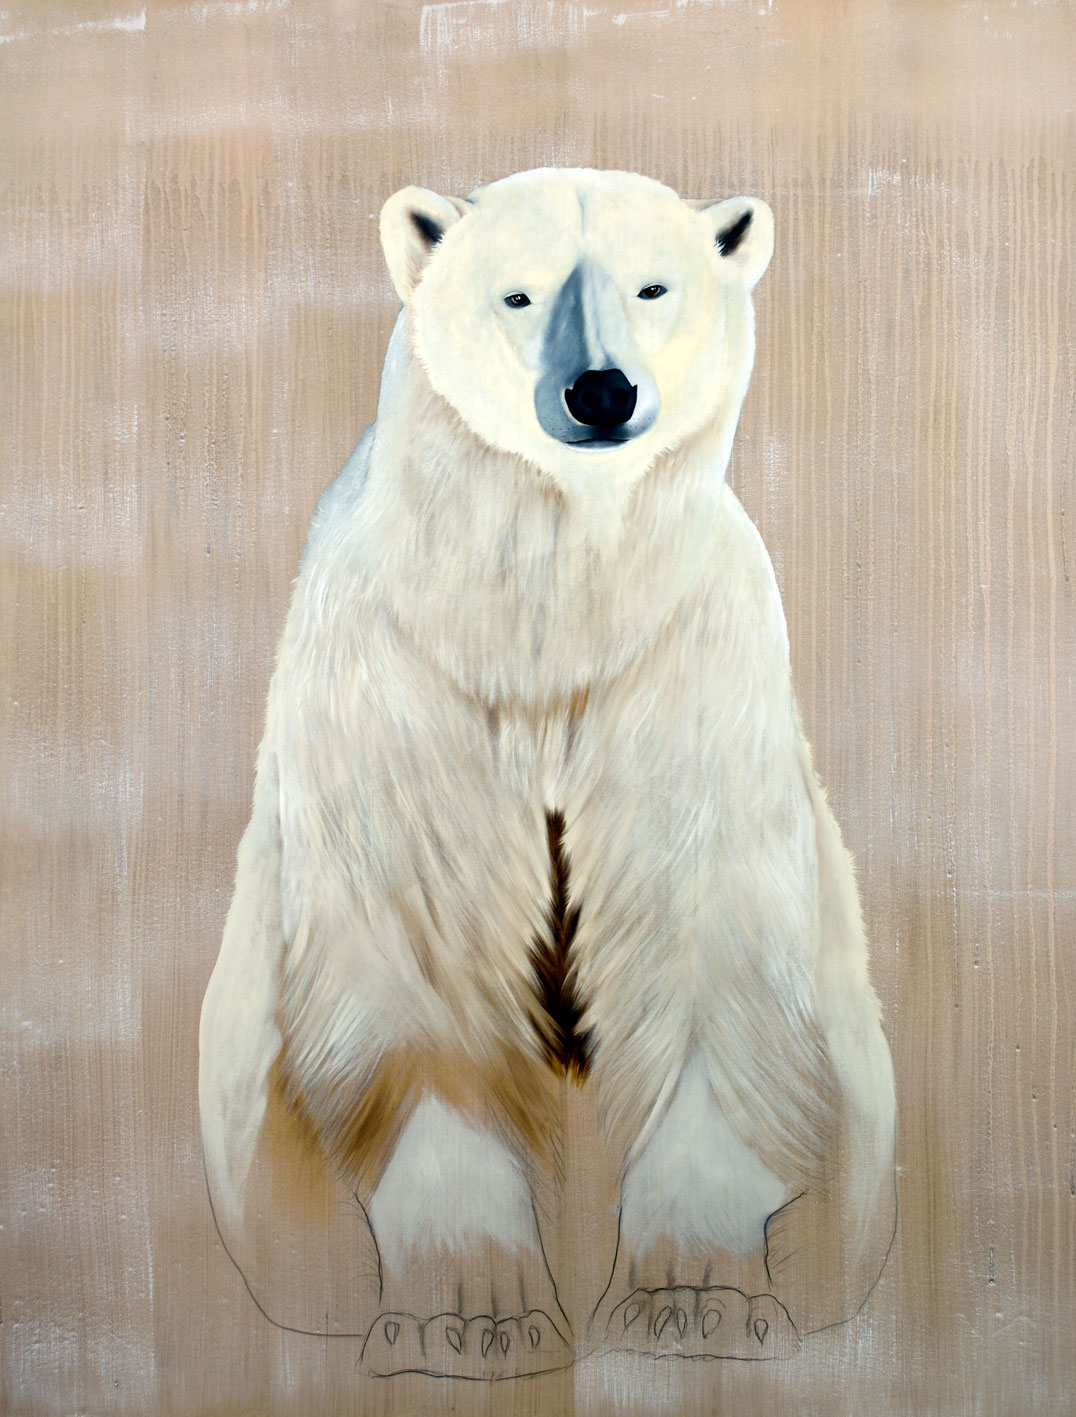 URSUS MARITIMUS ursus-maritimus-polar-bear-delete-threatened-endangered-extinction Animal painting by Thierry Bisch pets wildlife artist painter canvas art decoration